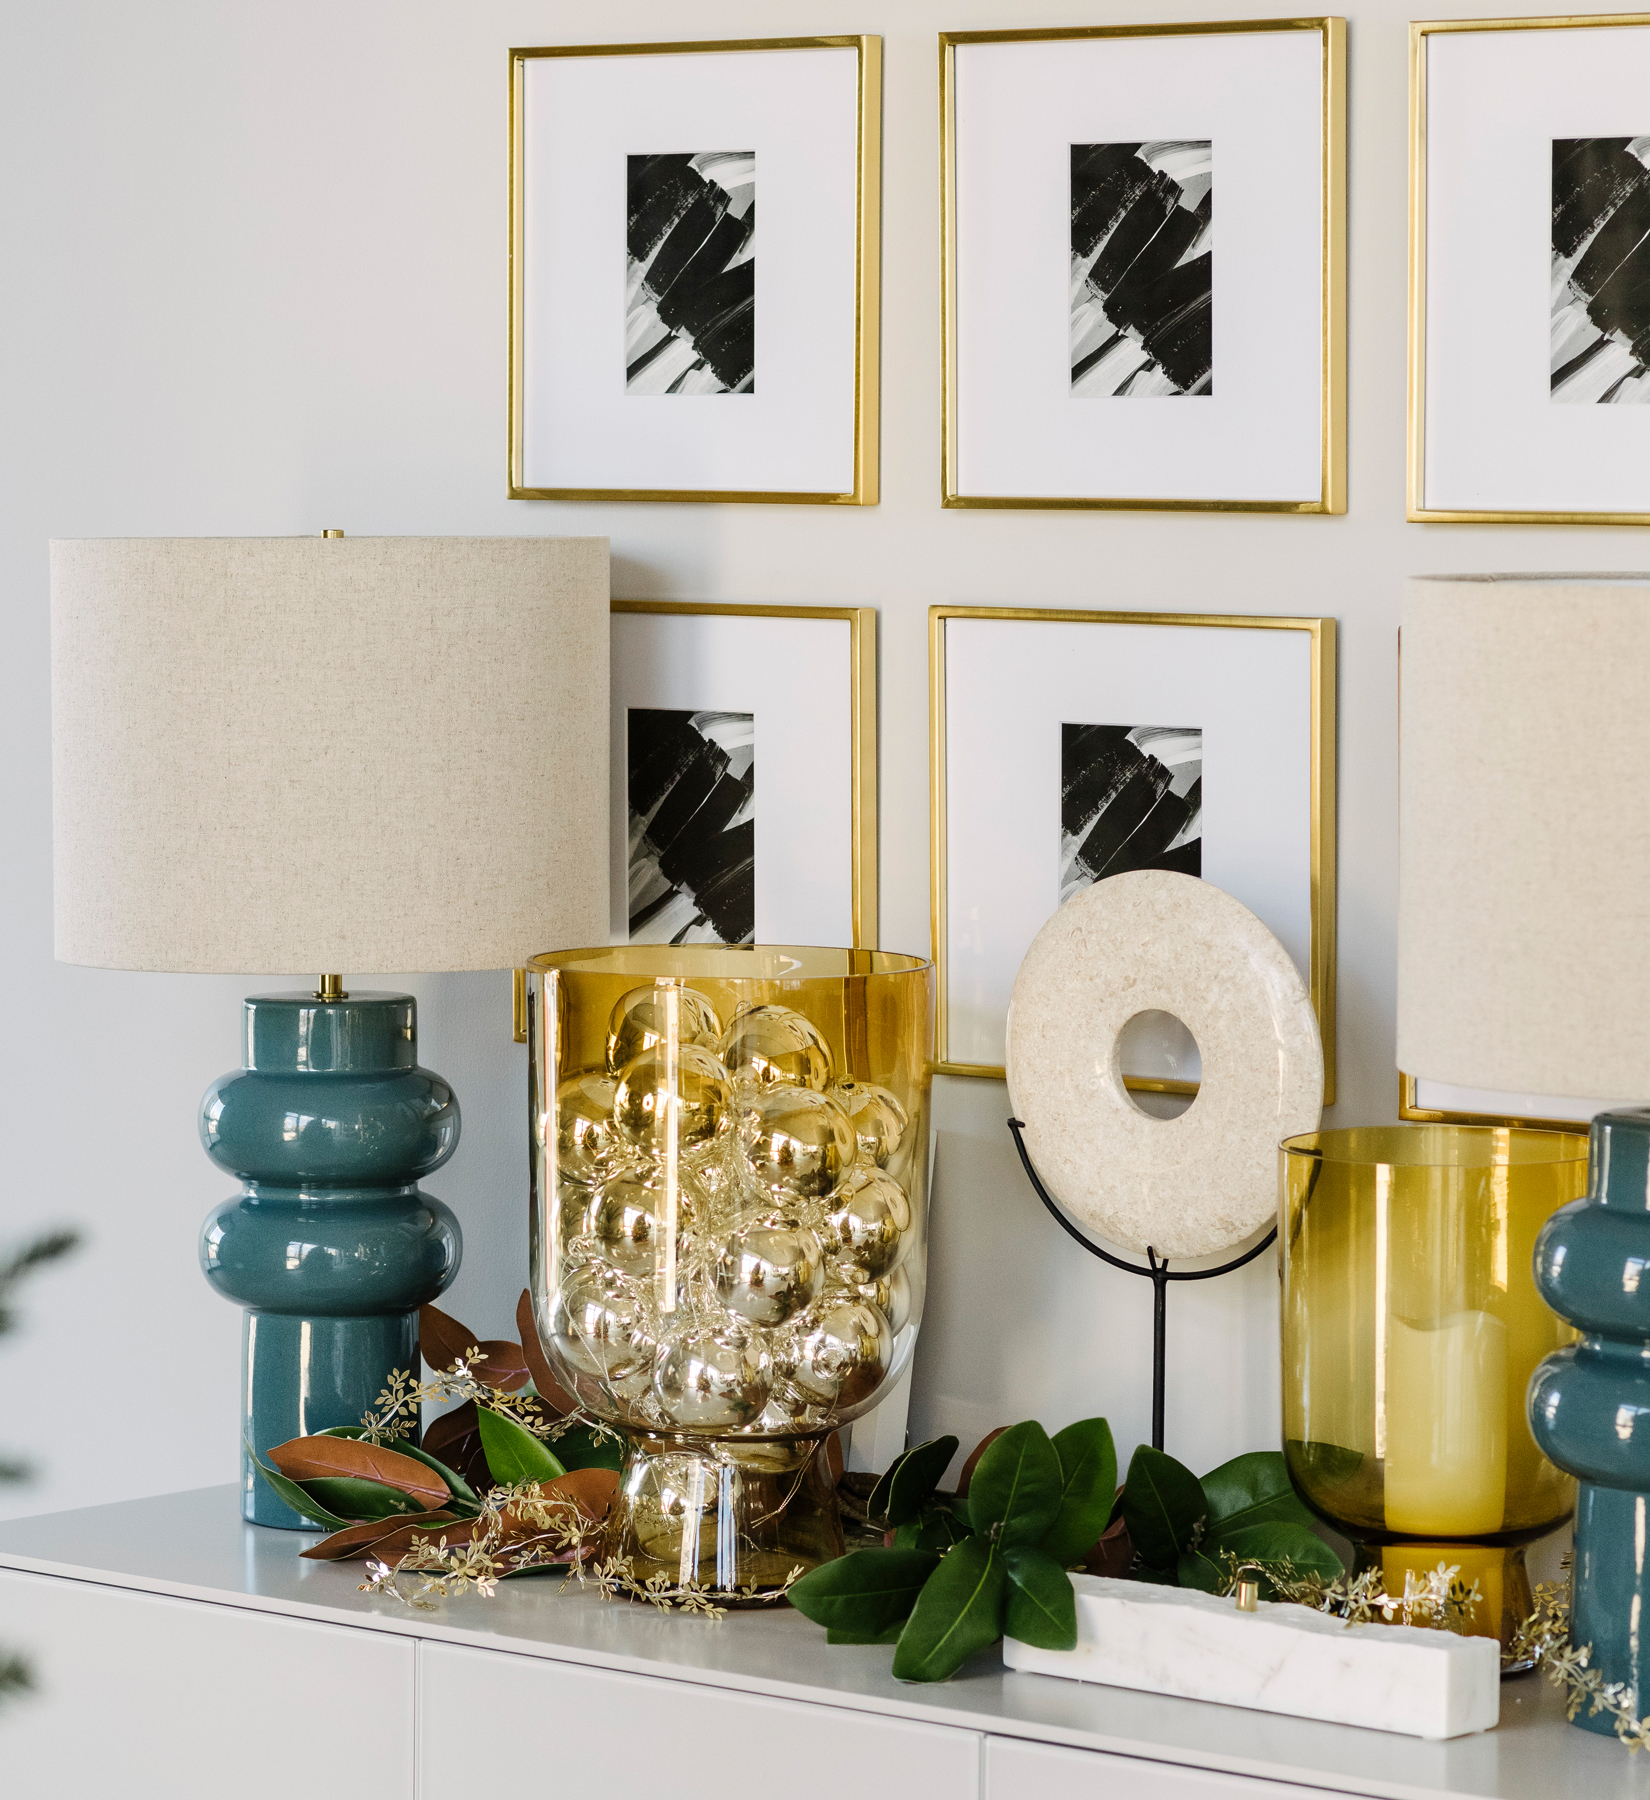 West Elm Holiday House decorating trends, ideas - Ornaments in bowl